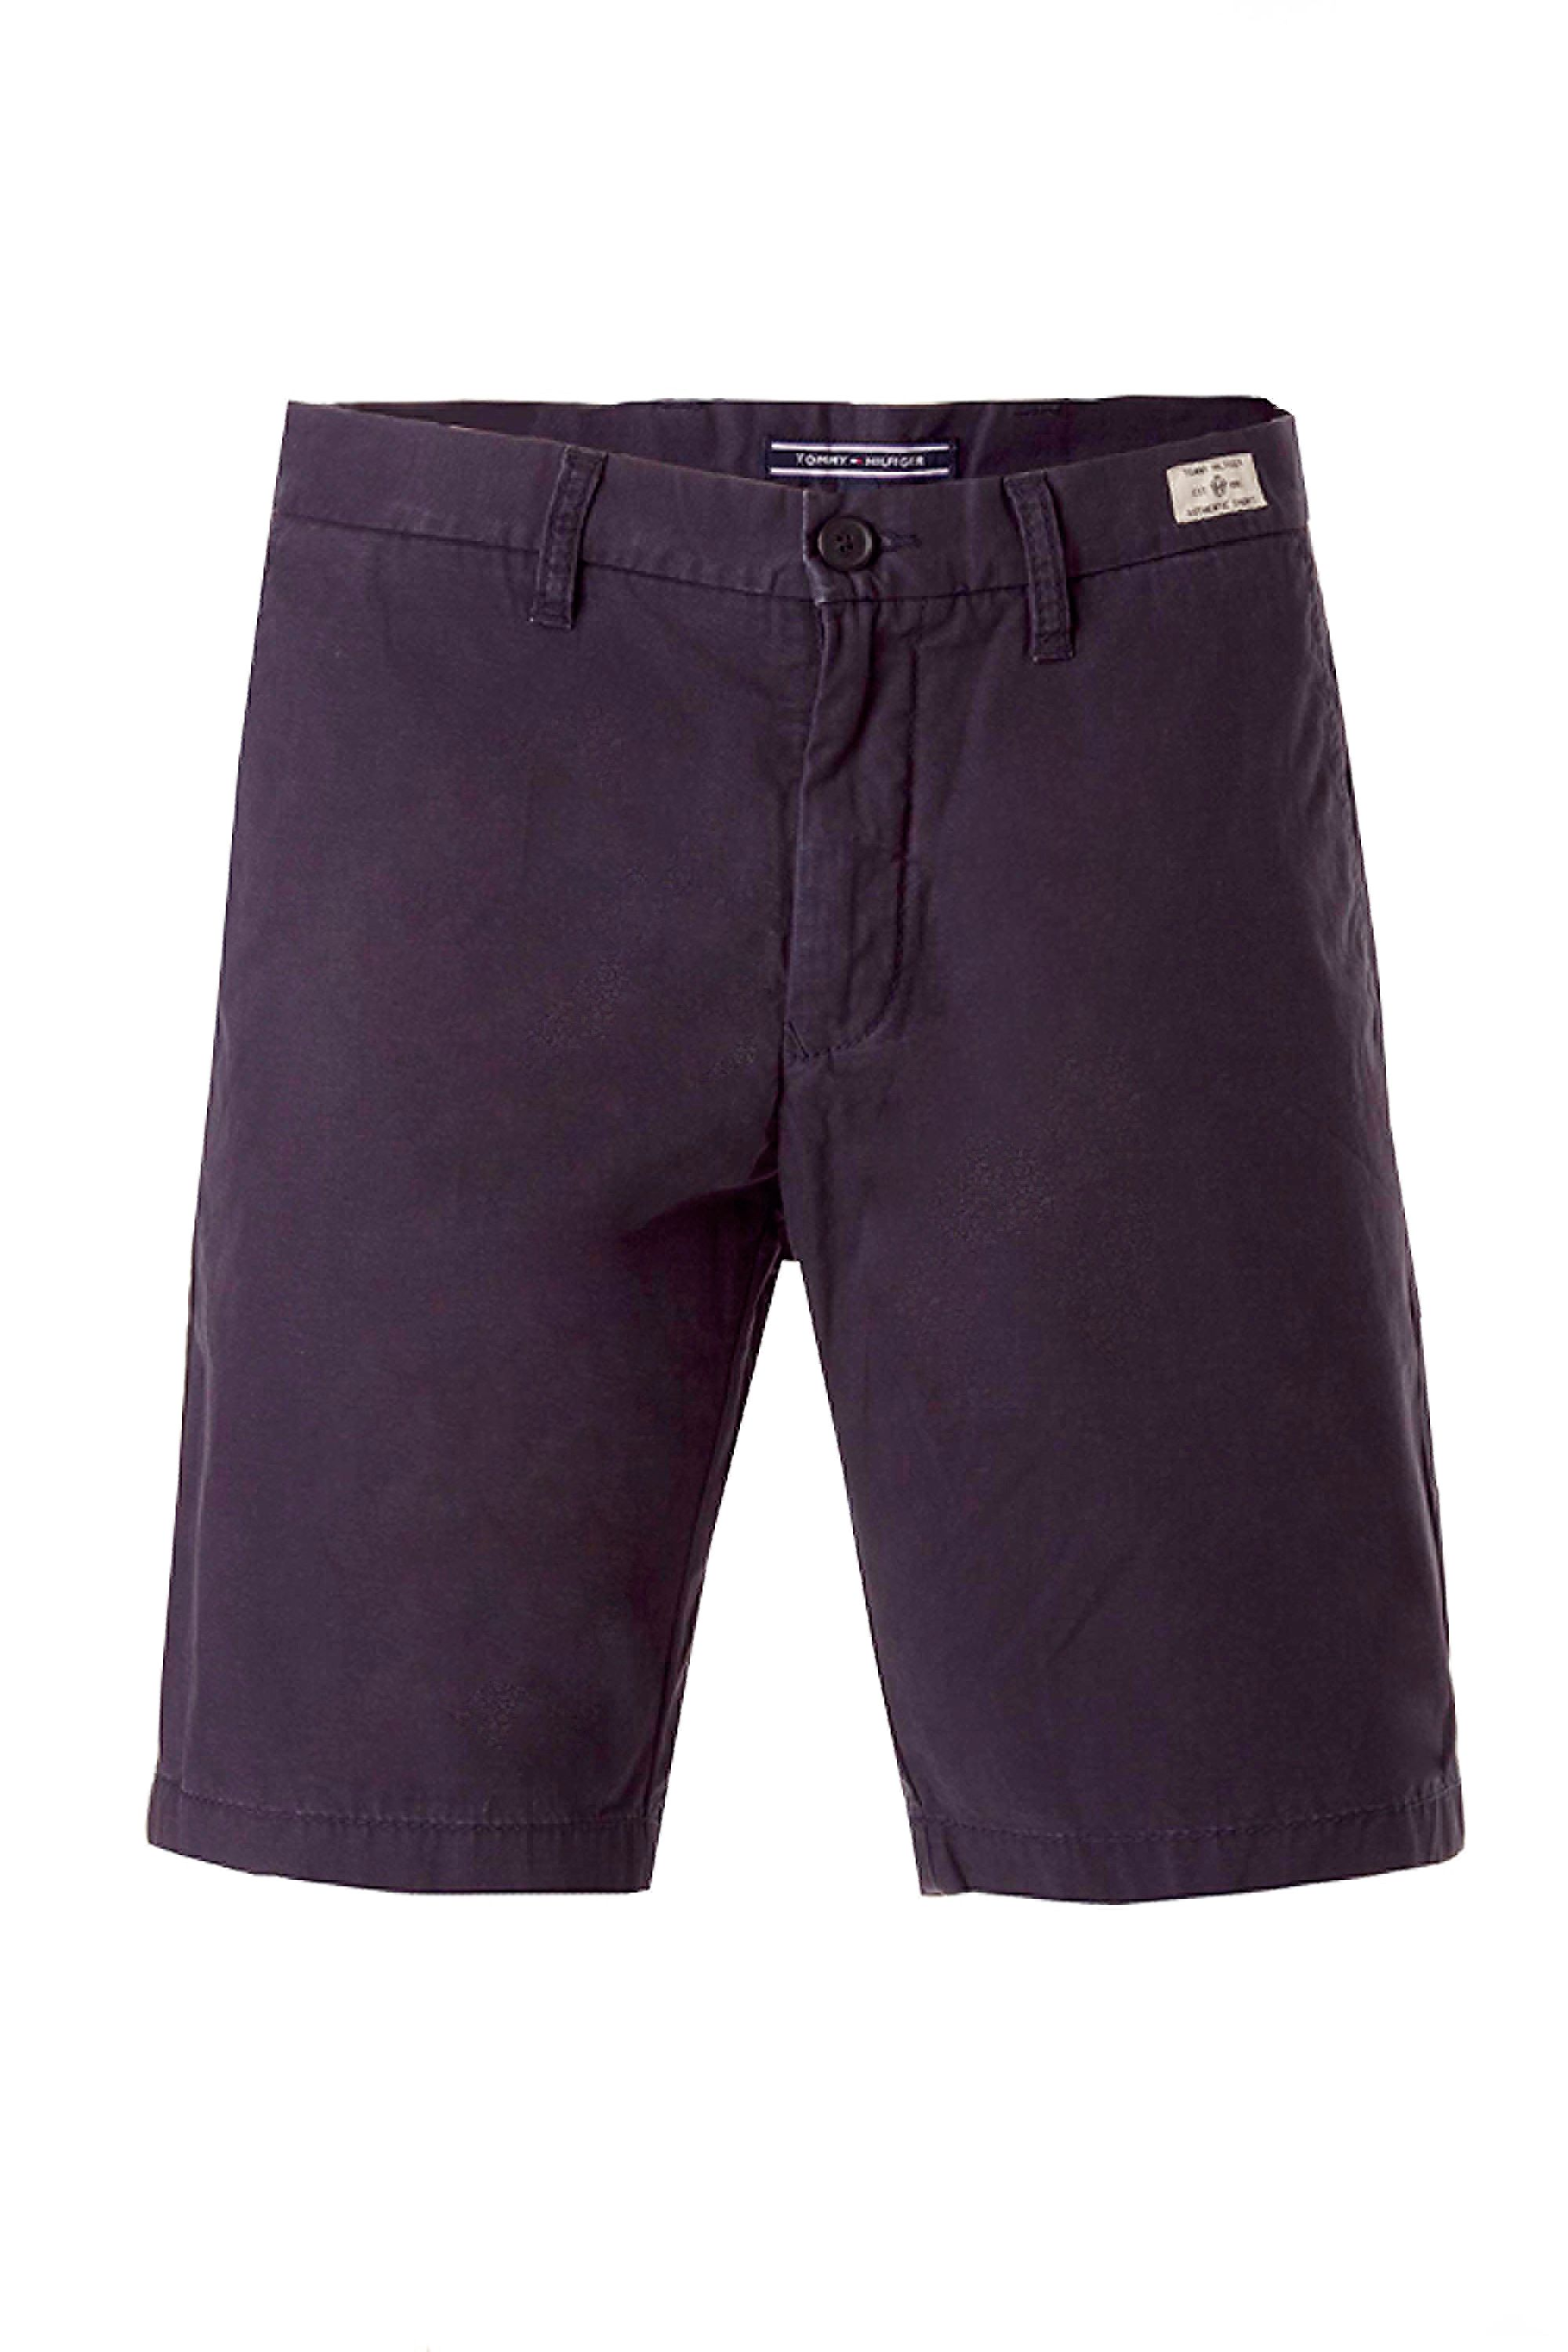 Brooklyn short boston twill